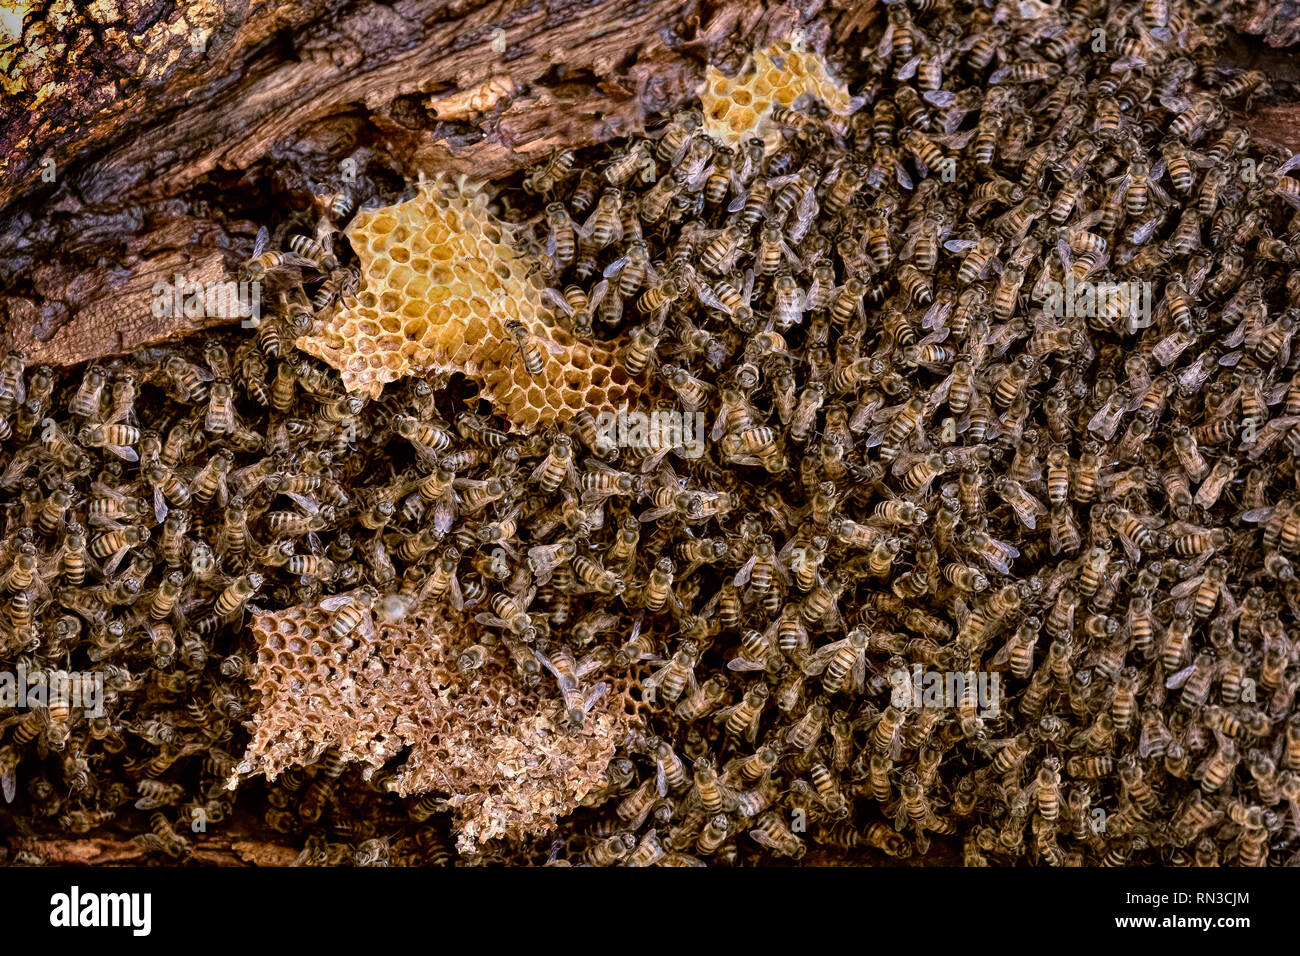 Bees in Wild on tree with honeycomb - Stock Image